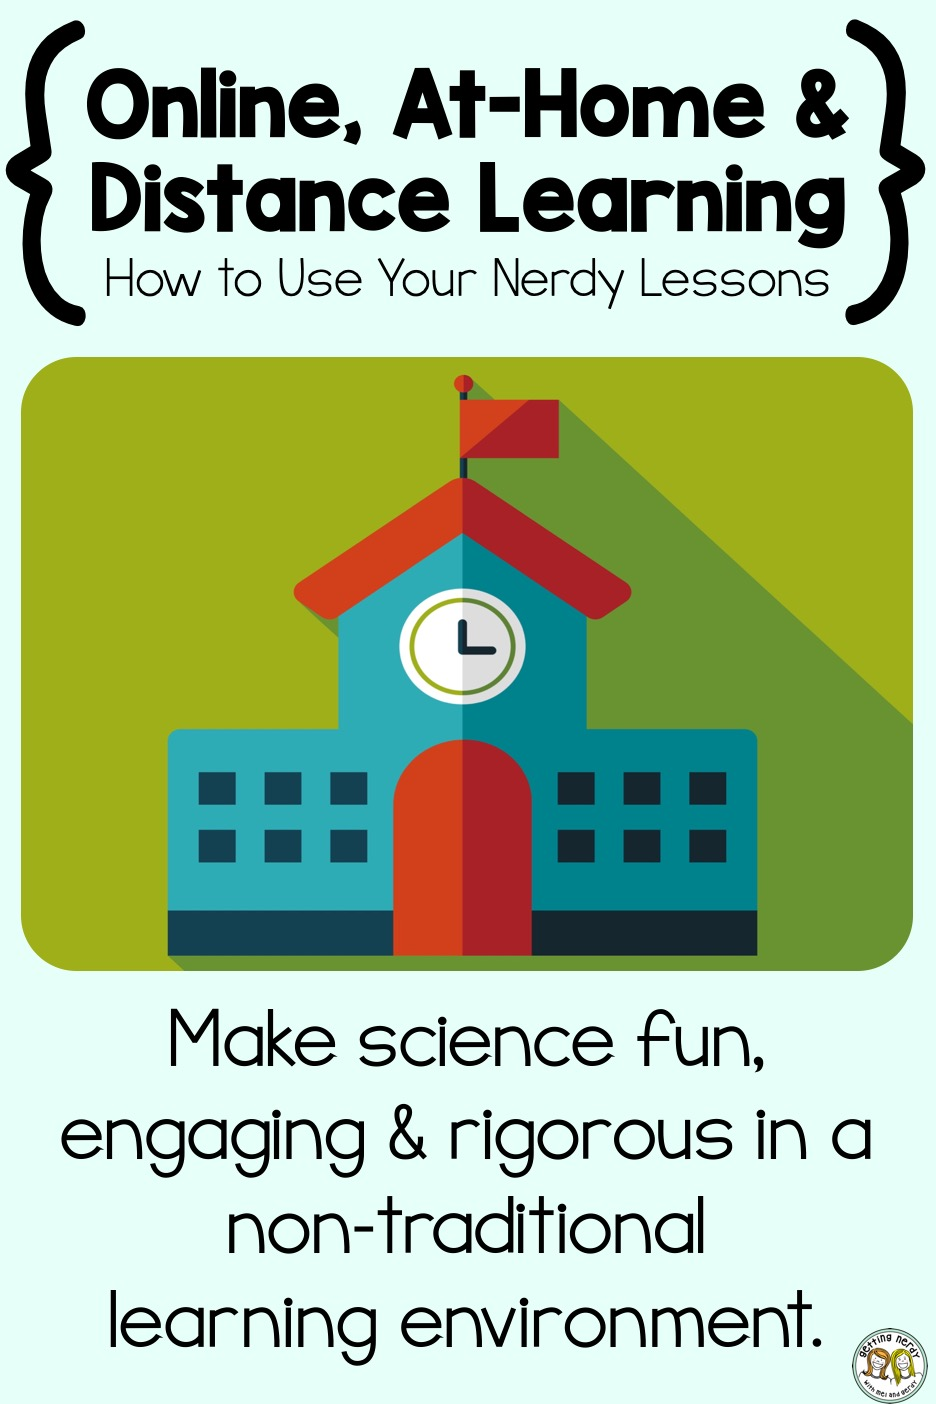 Learn how to use your Getting Nerdy resources with Google Classroom for online, at-home, distance learning, homeschool and non-traditional classroom environments. #distancelearning #homeschoolscience #gettingnerdyscience